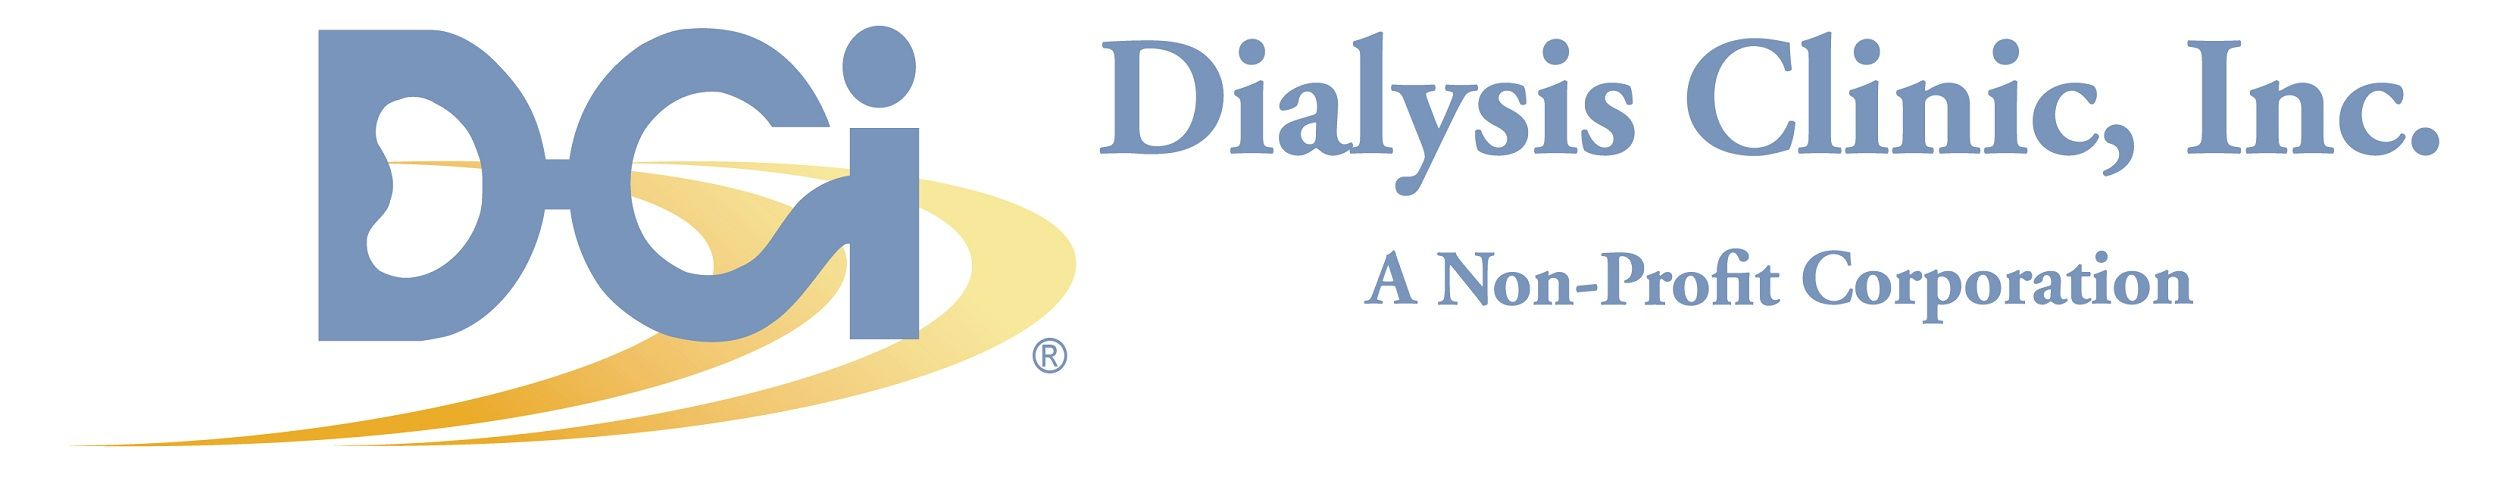 Dialysis Clinic Inc. (DCI) Logo